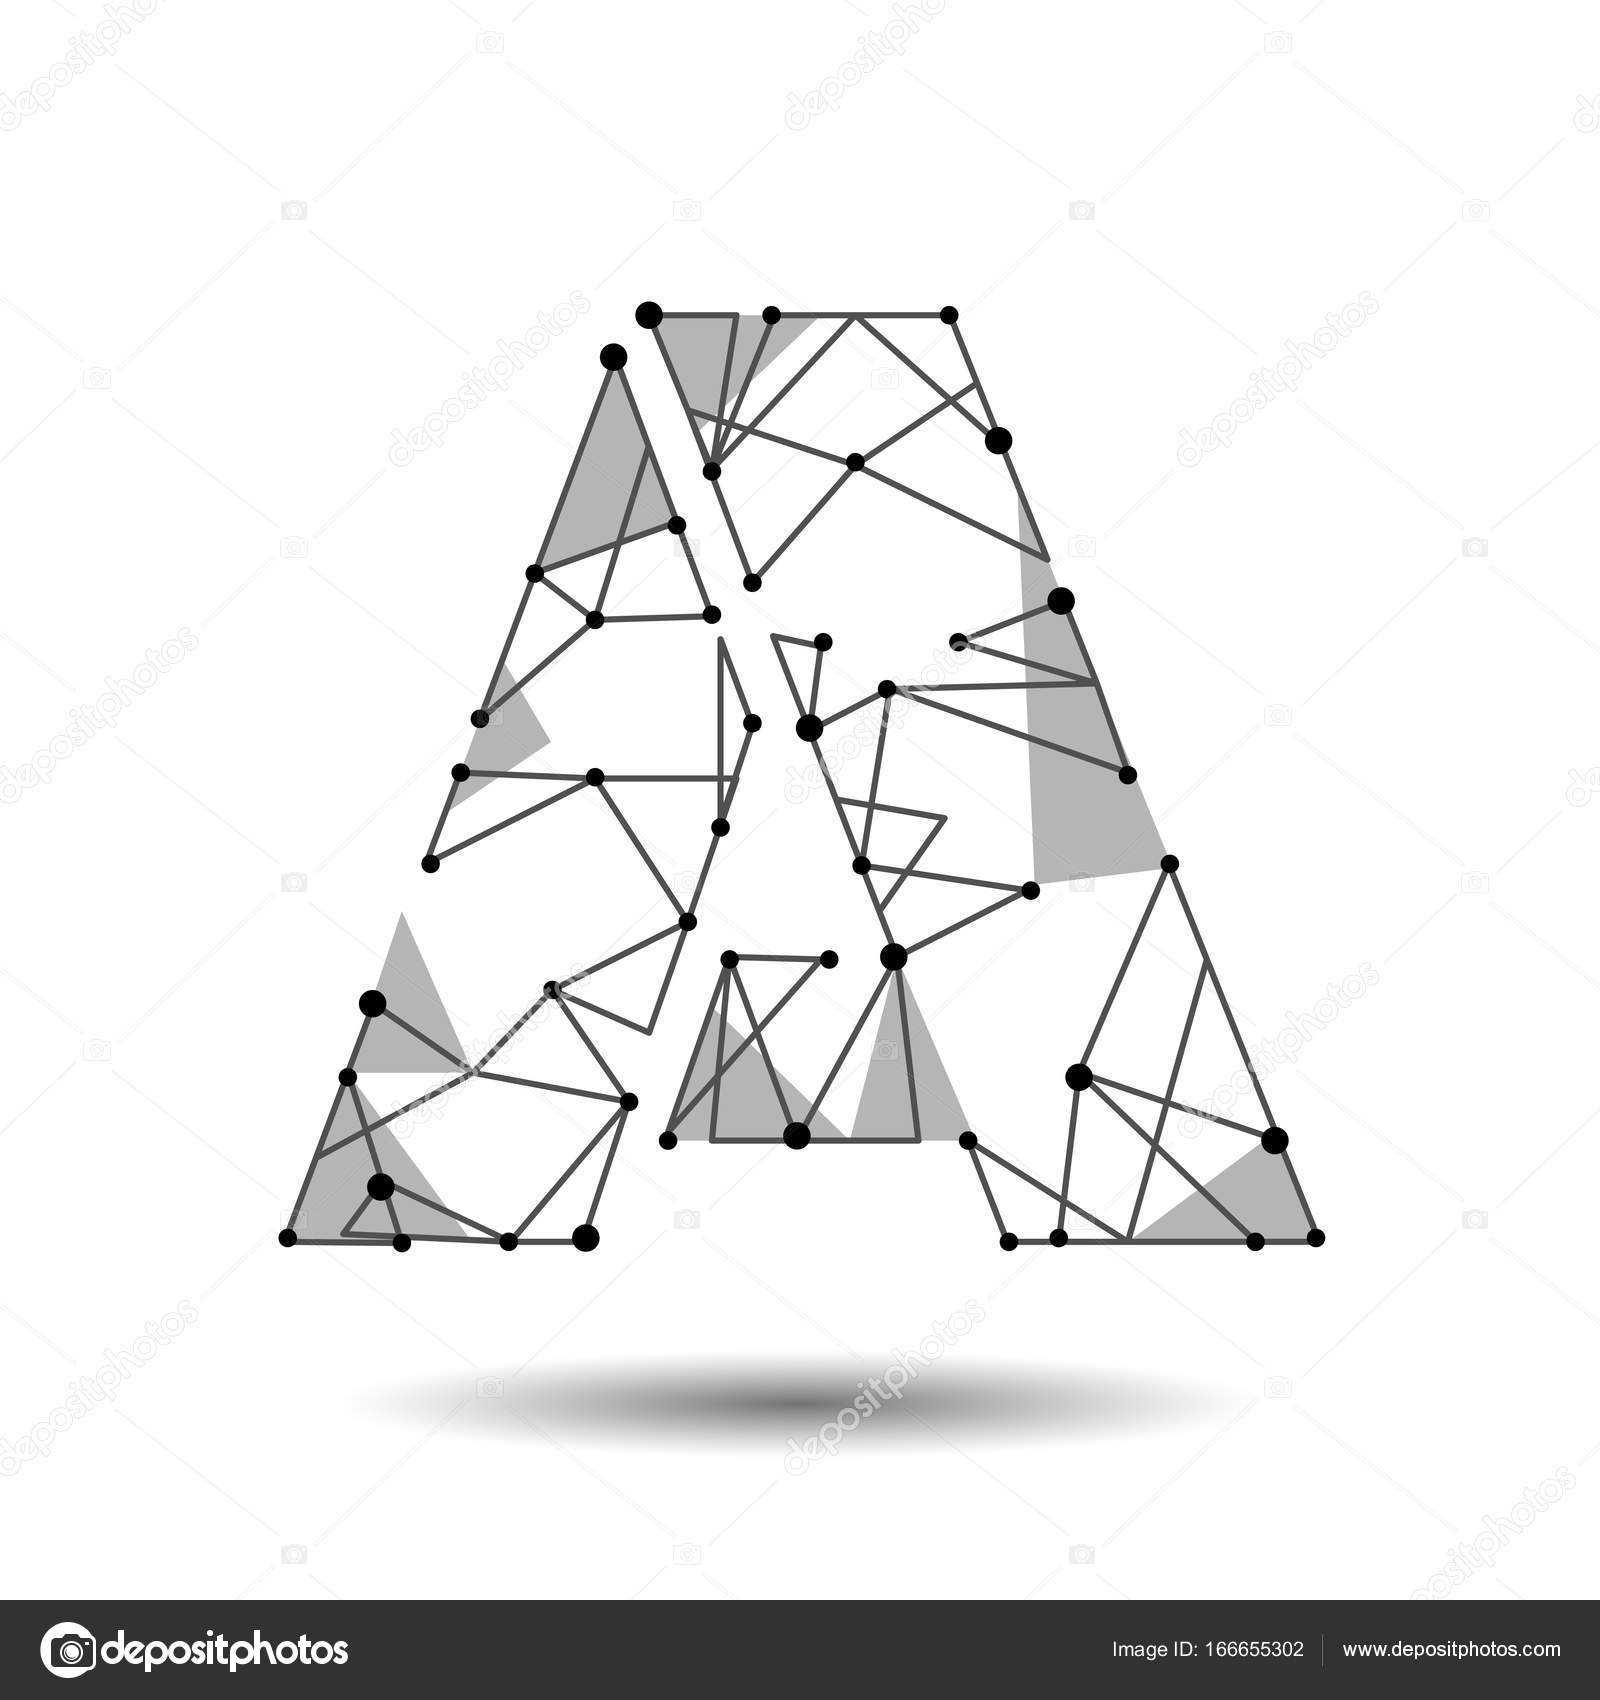 Low poly letter a english latin cyrillic polygonal triangle connect low poly letter a english latin cyrillic polygonal triangle connect dot point line black white 3d structure model font type vector logo illustration art thecheapjerseys Images